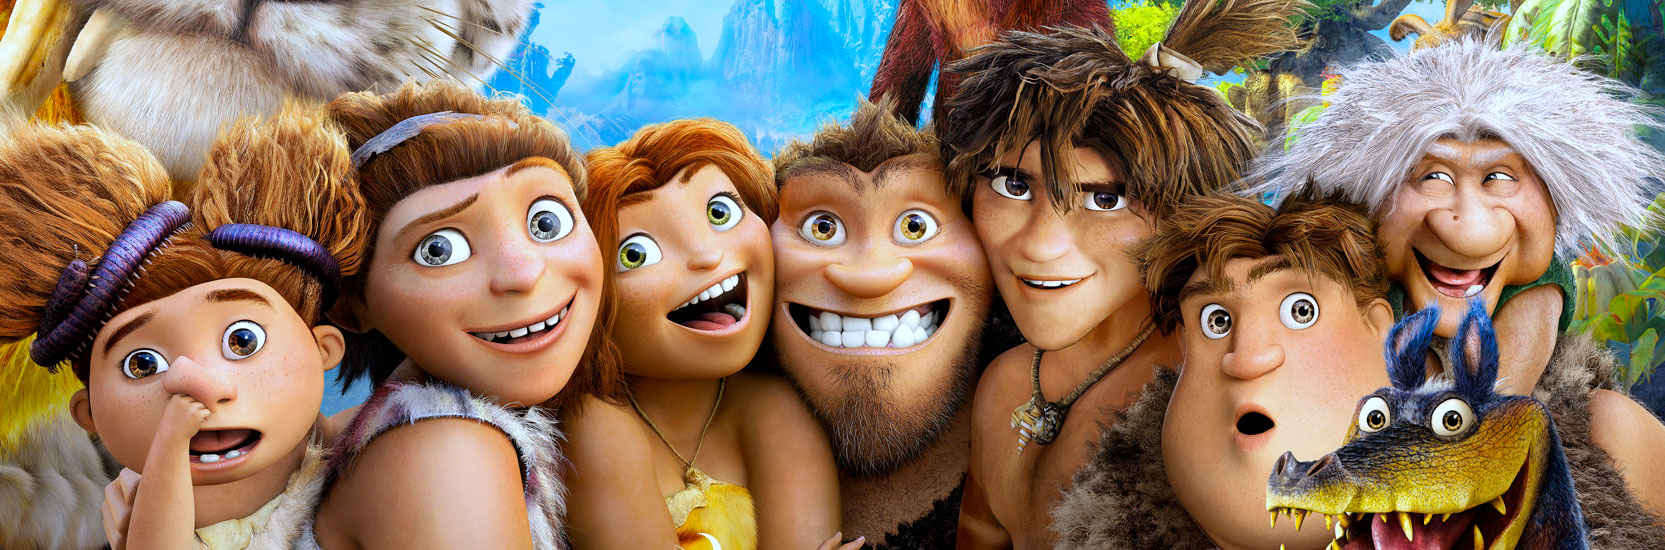 "DreamWorks Animation annule ""Les Croods 2""."